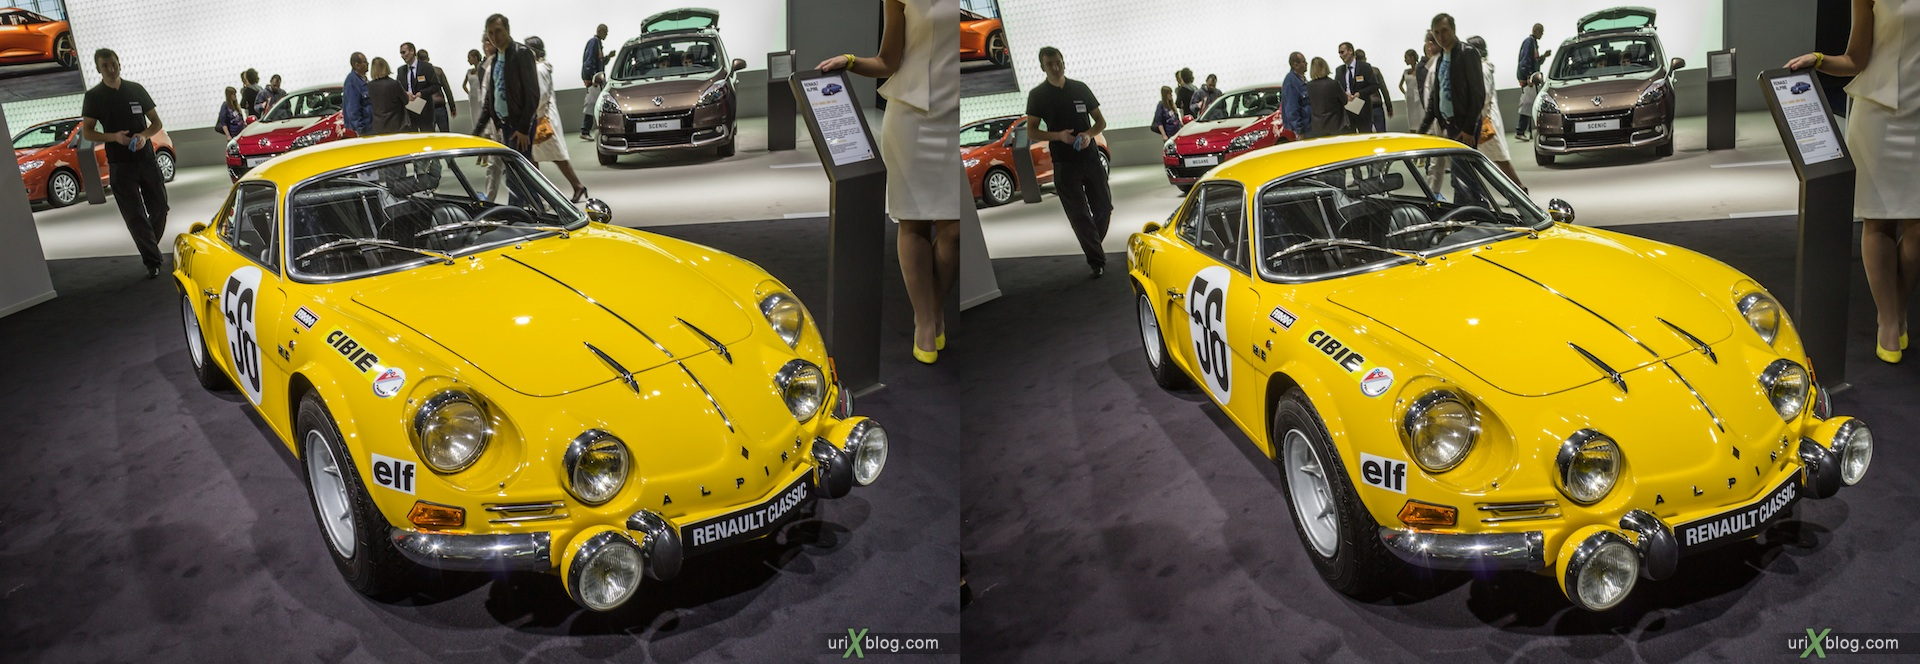 2012, Alpine Renault, Moscow International Automobile Salon, auto show, 3D, stereo pair, cross-eyed, crossview